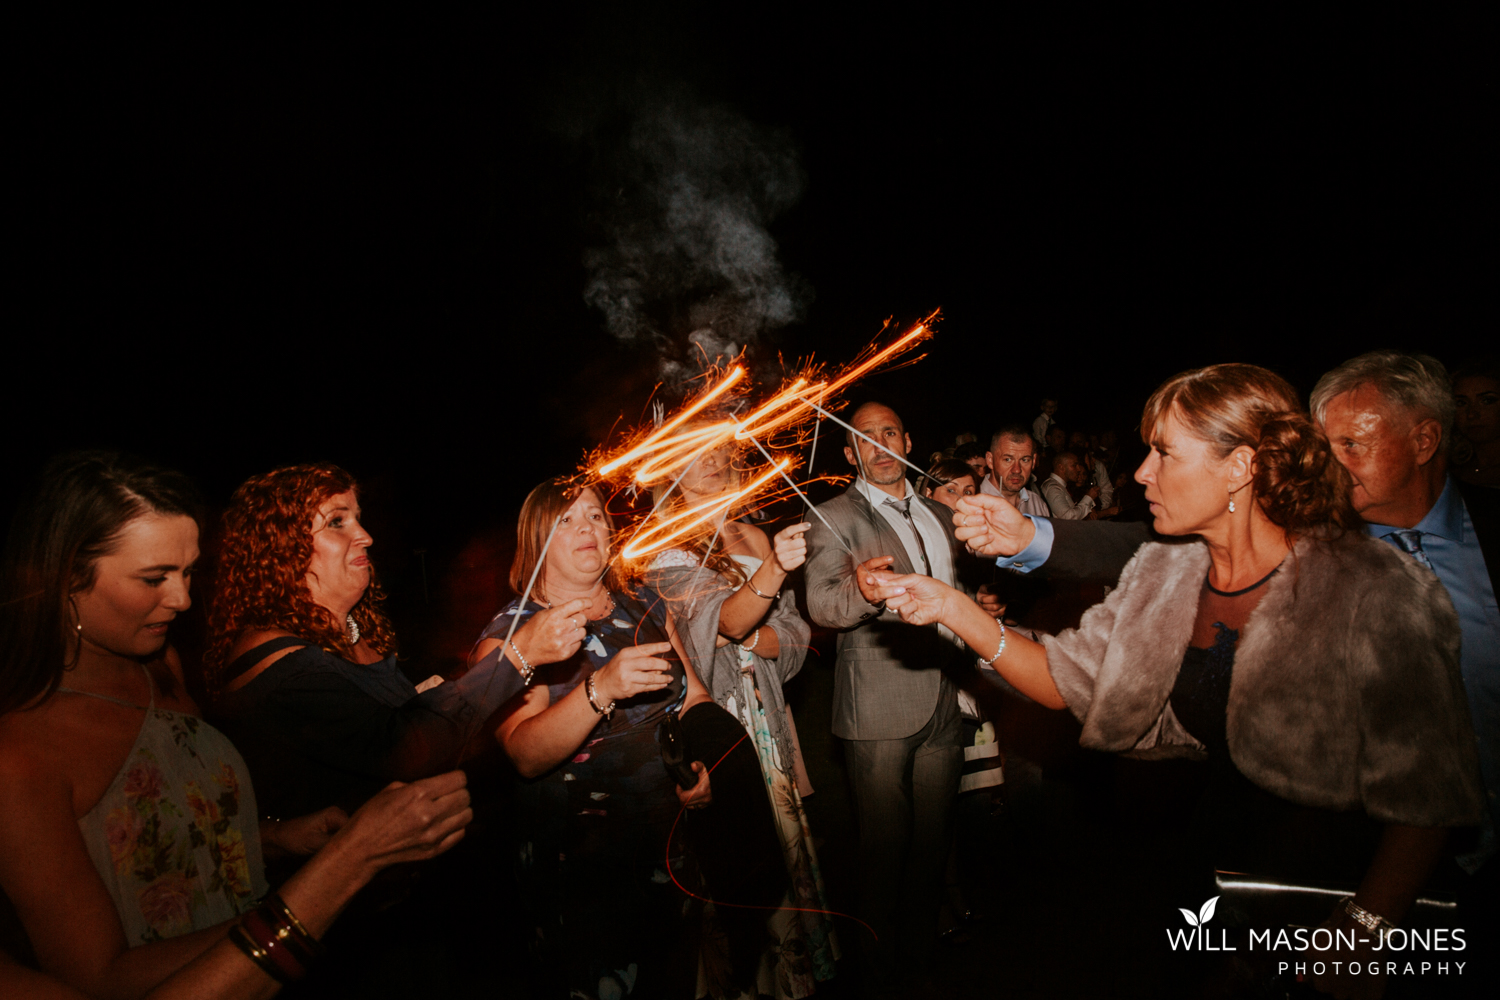 night sparklers fireworks at hensol castle wedding photographer cardiff